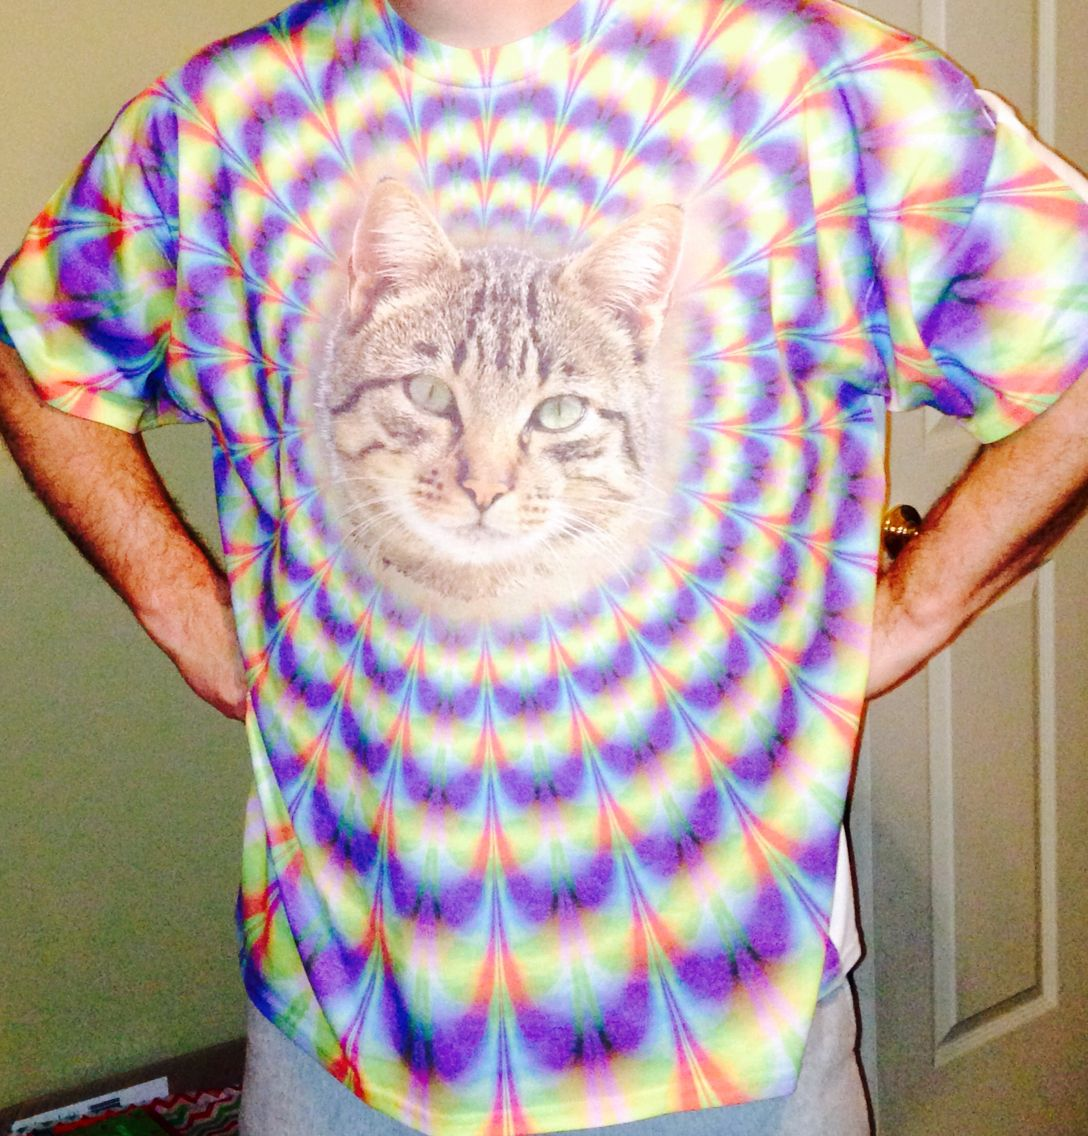 Look into the Kitty Shirt. Let it take you away......